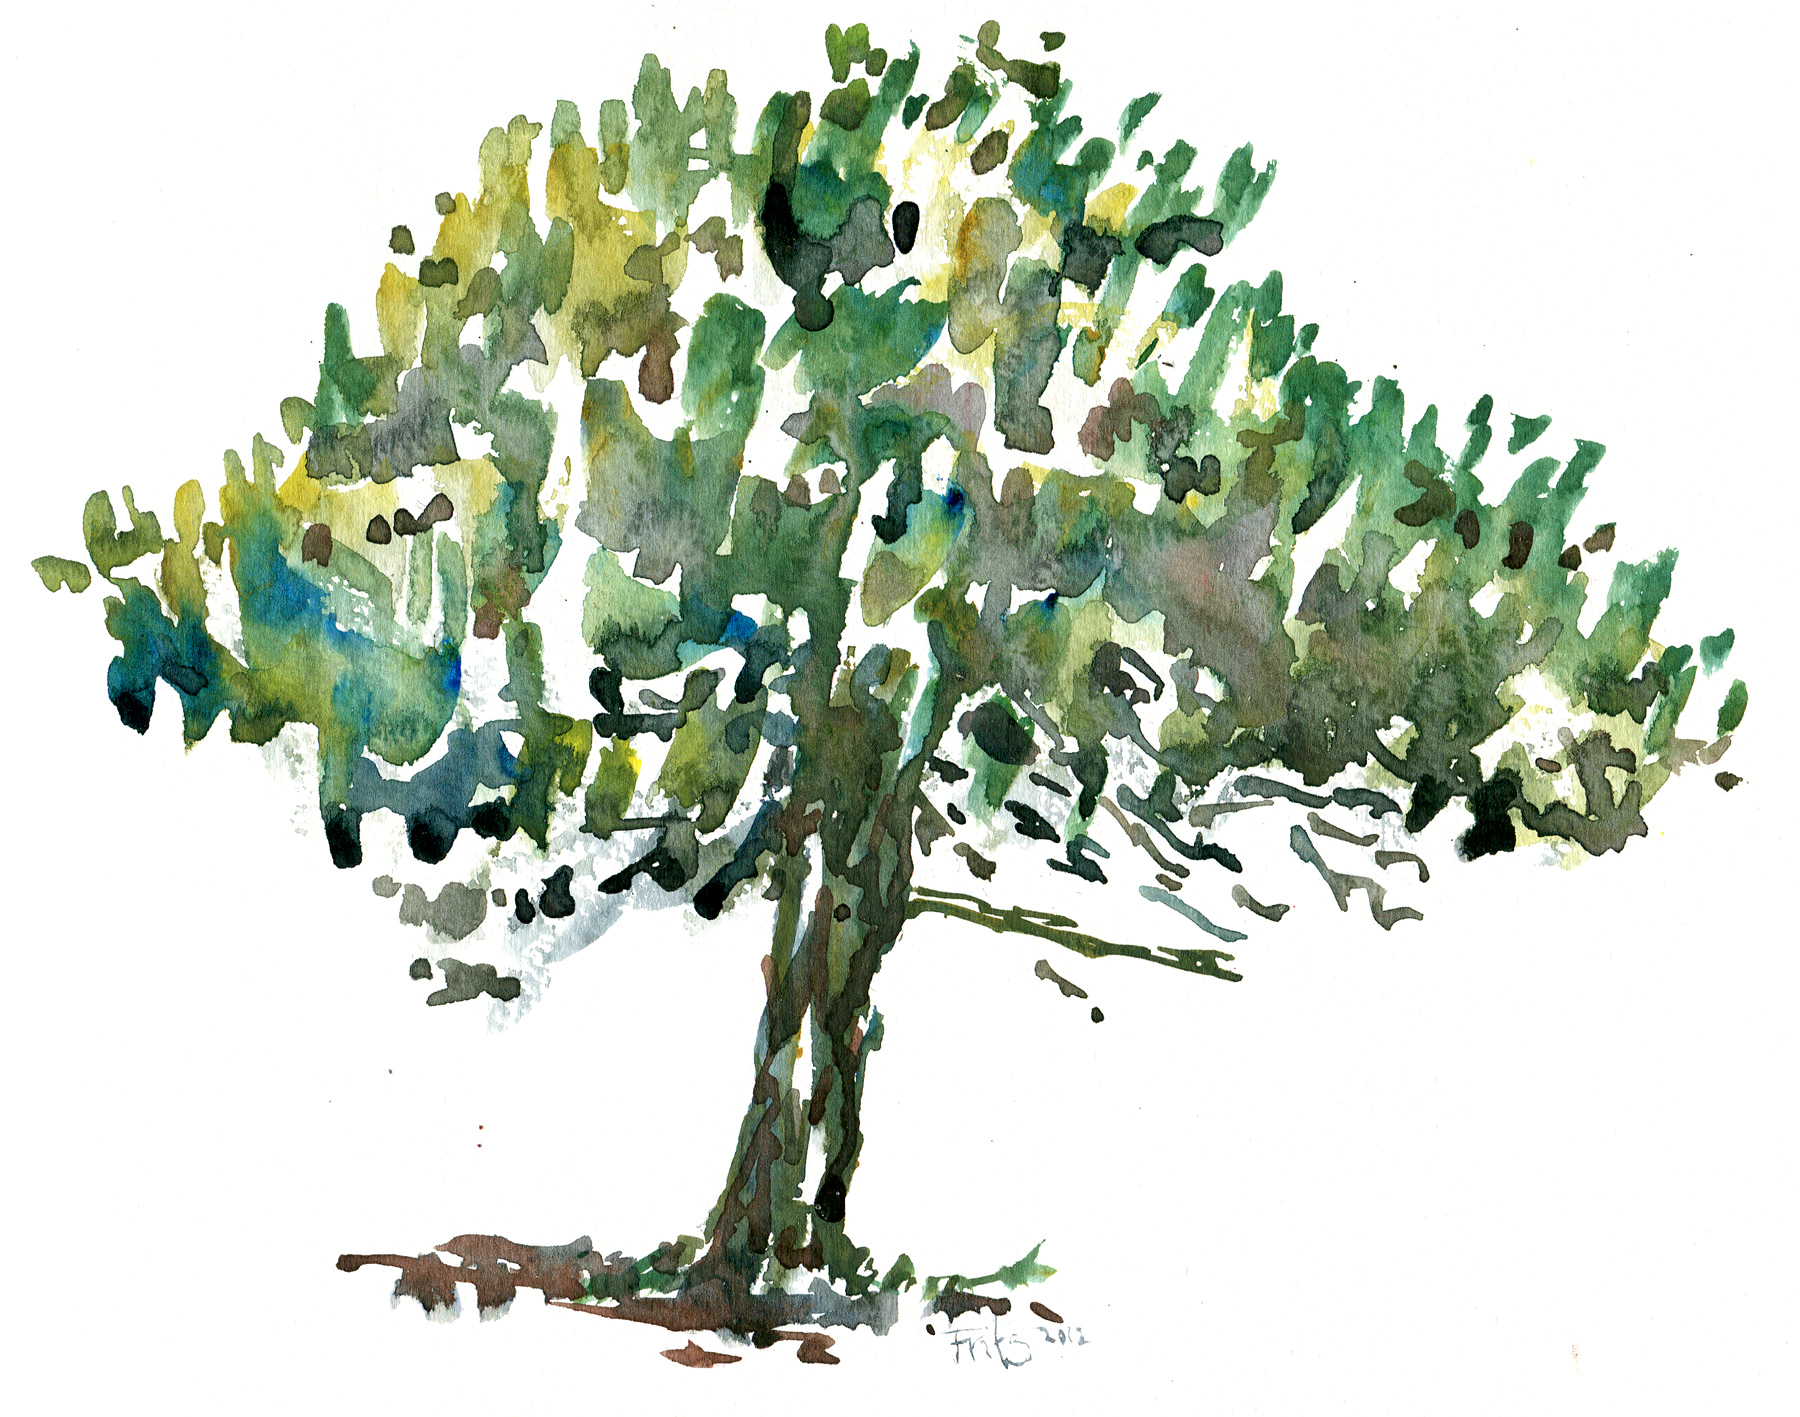 bornholm-galokken-tree-watercolor | The Hiking Artist project by ...